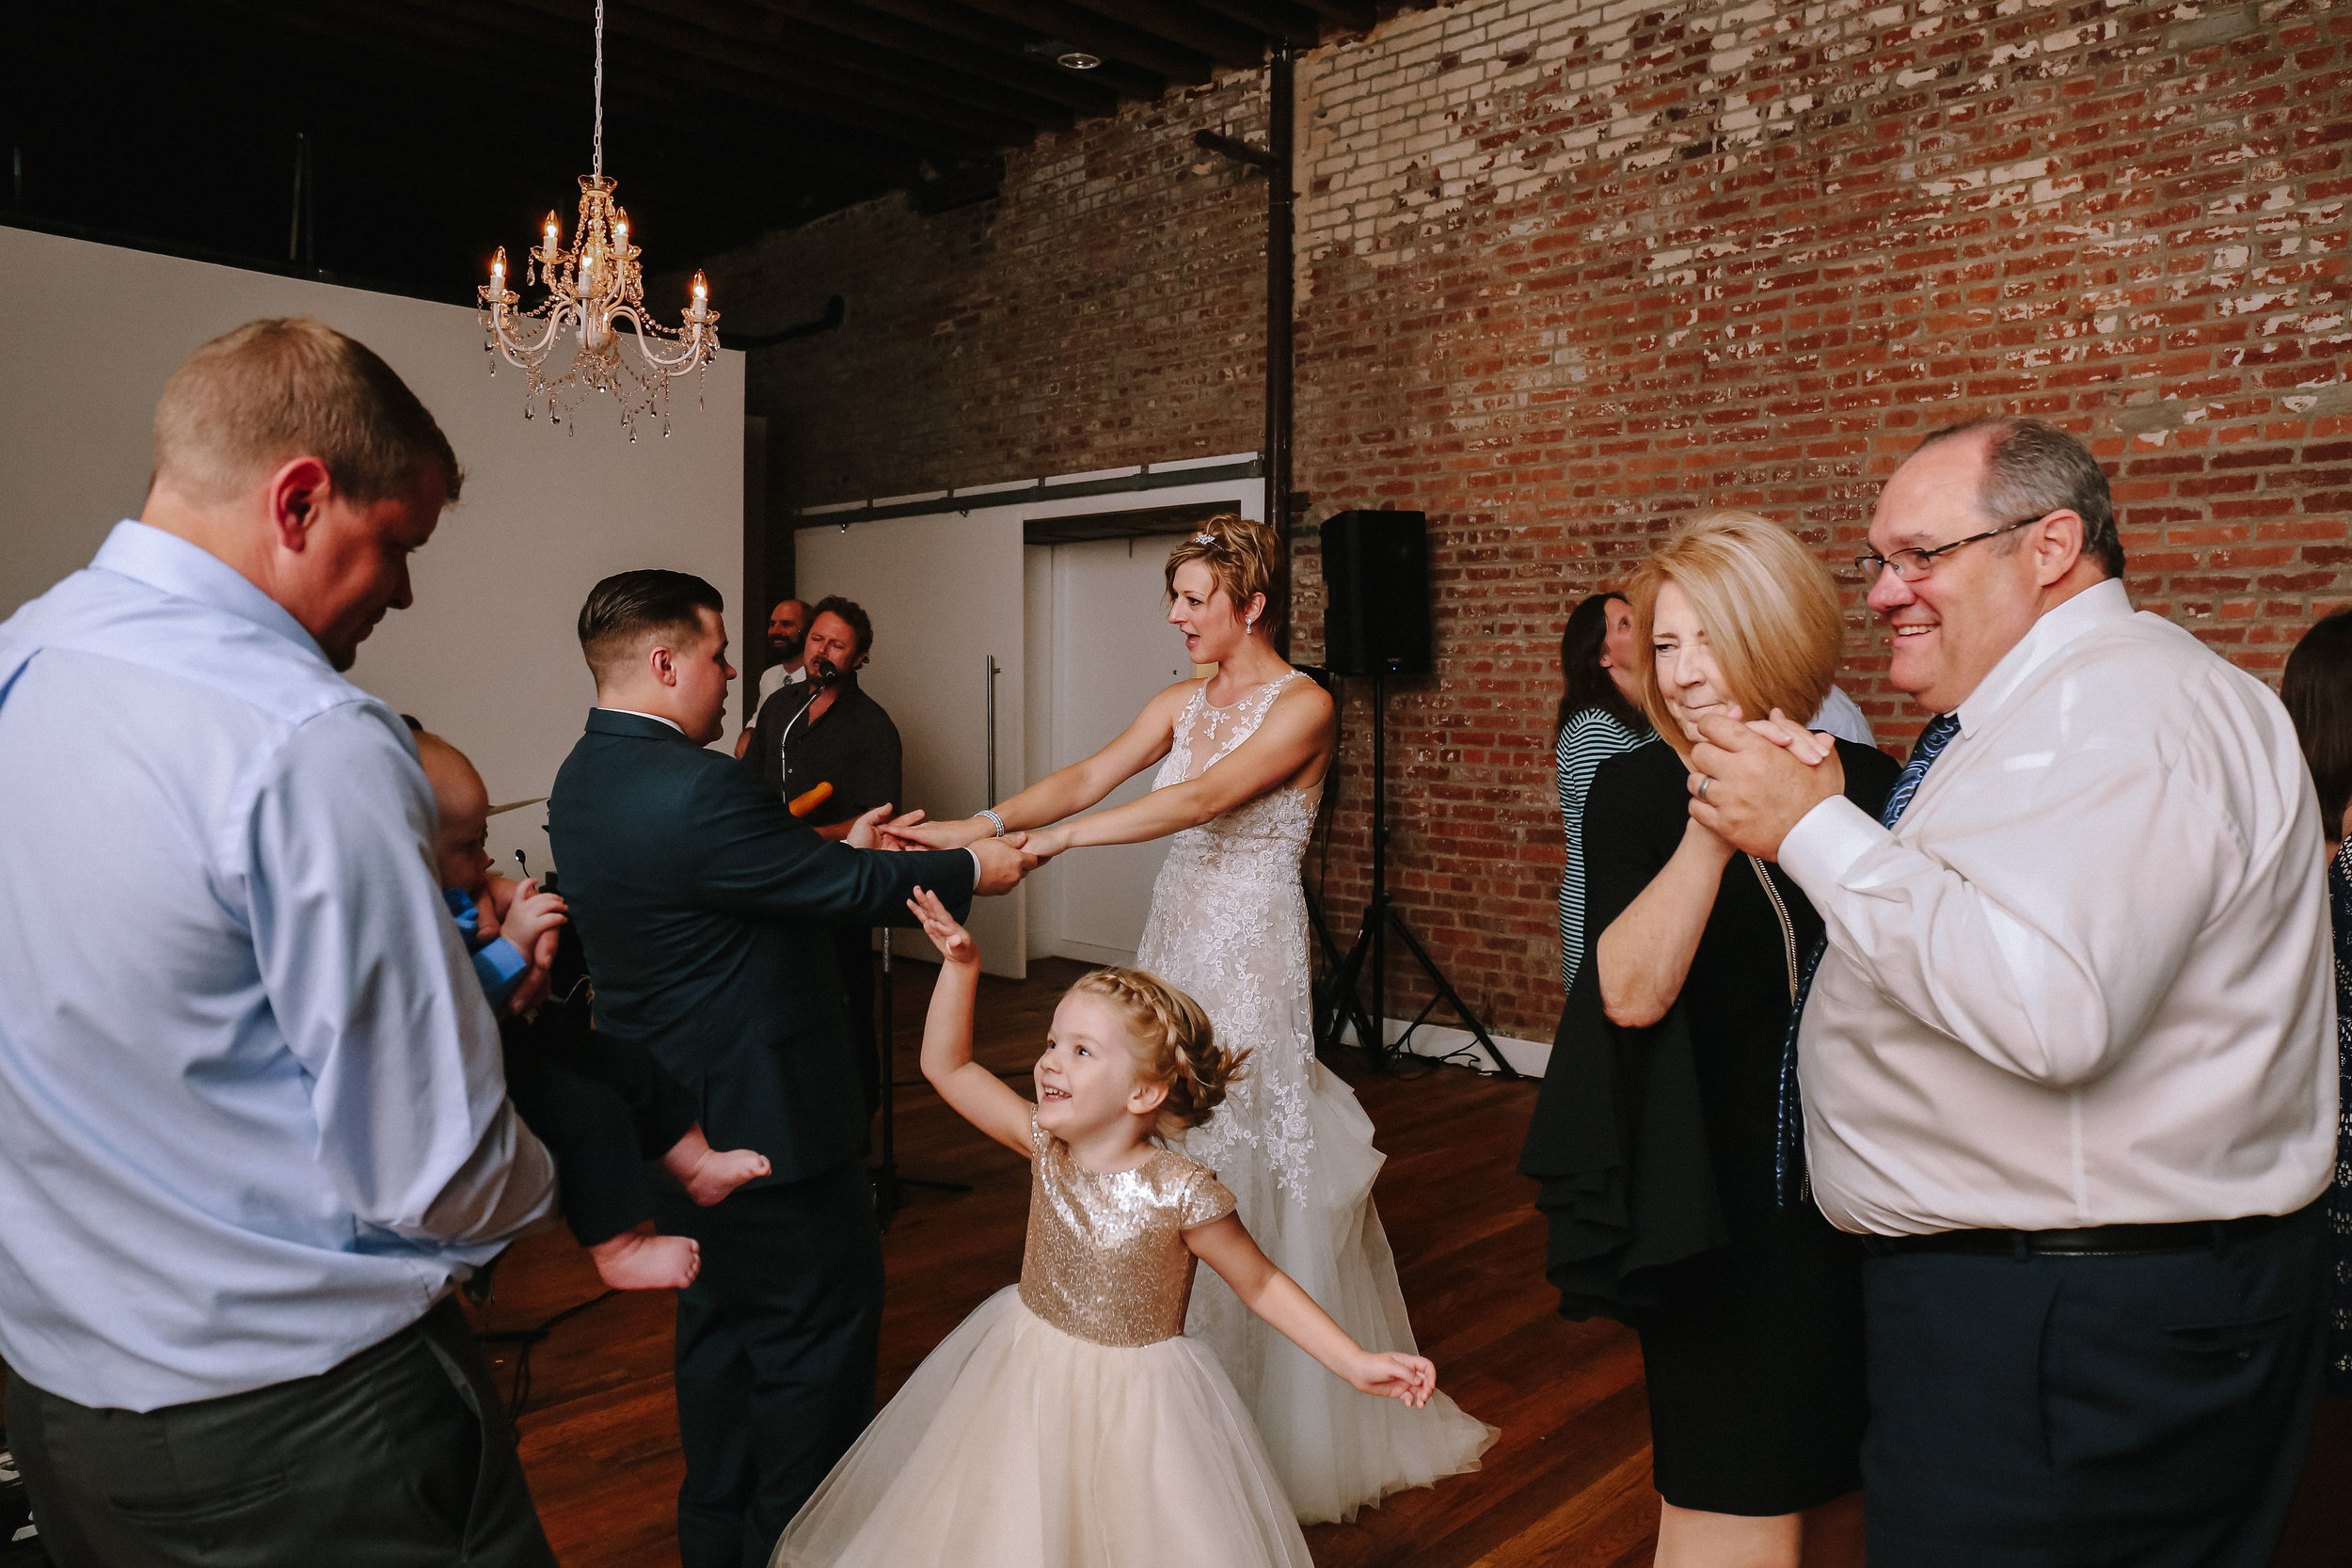 Bride and groom celebrating at wedding reception for Pittsburgh wedding at Studio Slate planned by Exhale Events. Find more wedding inspiration at exhale-events.com!